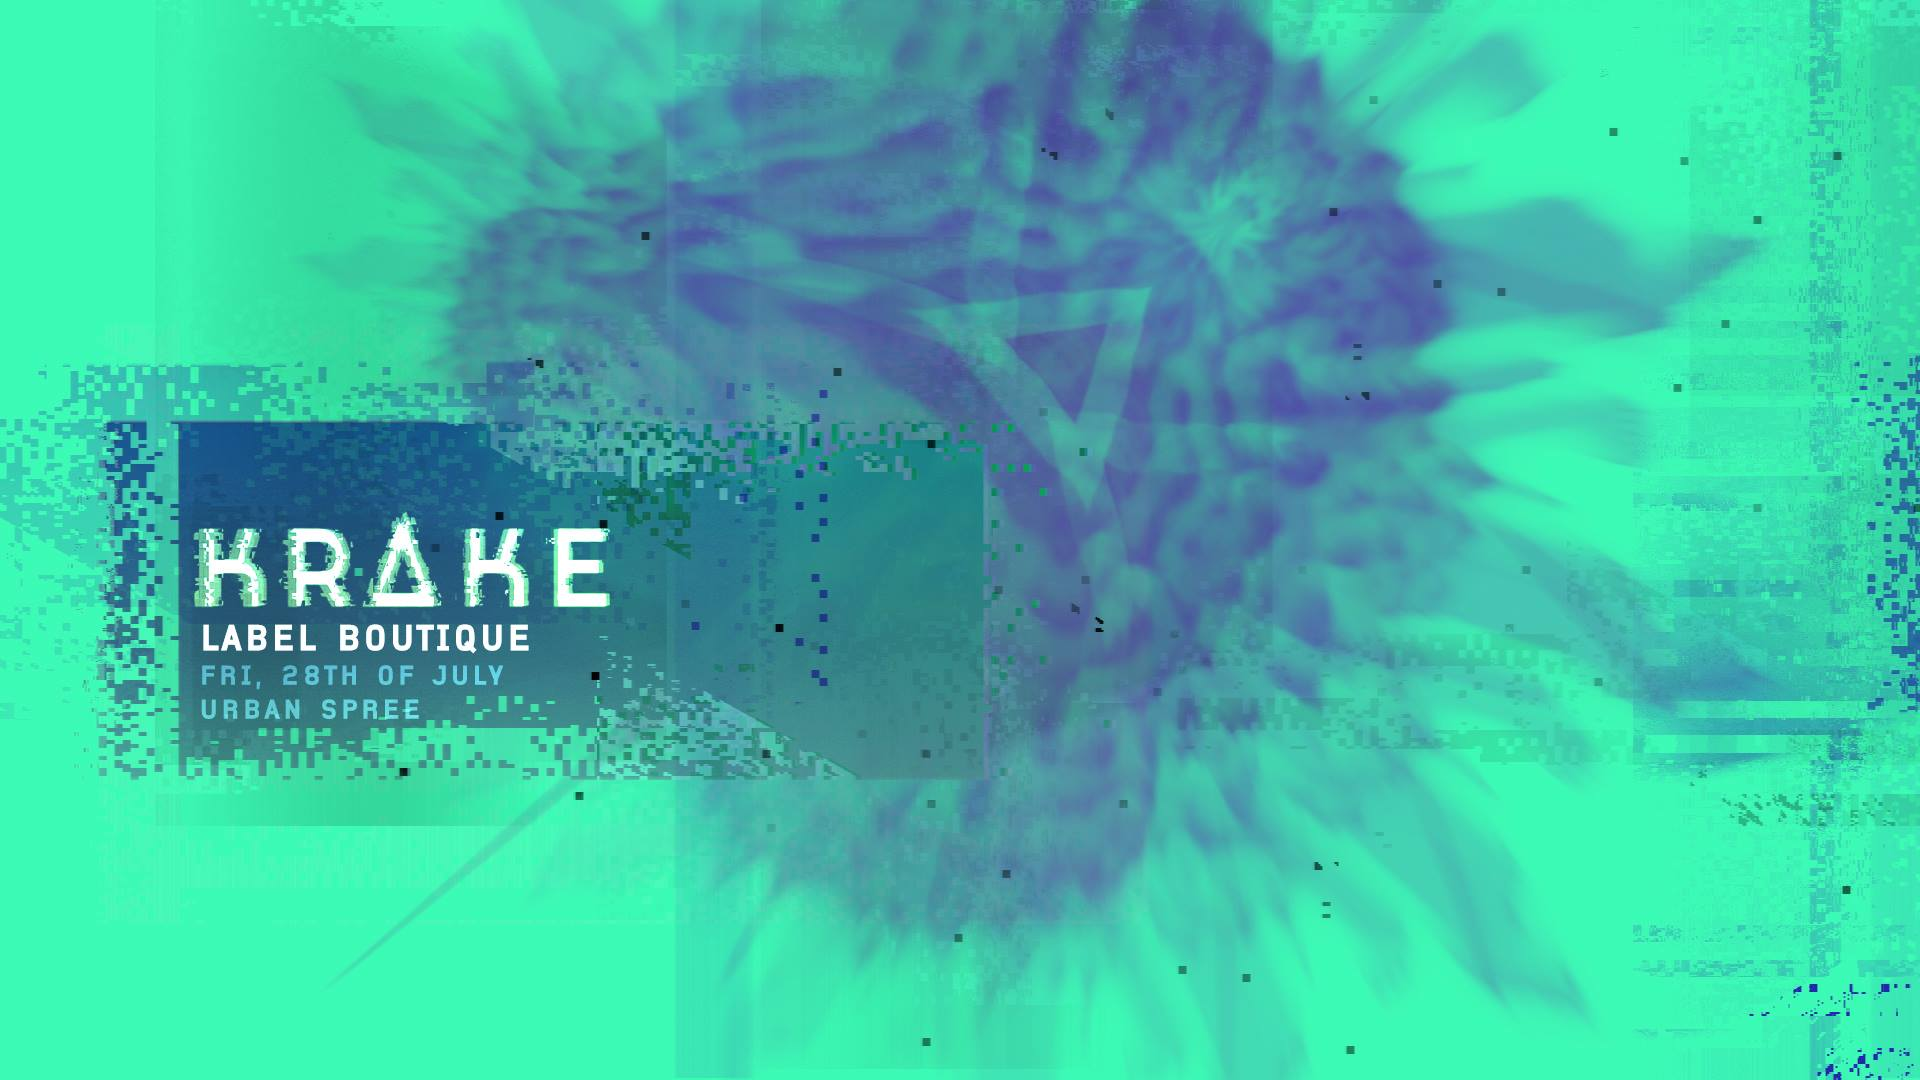 Krake Label Boutique / Krake Festival 2017 Berlin